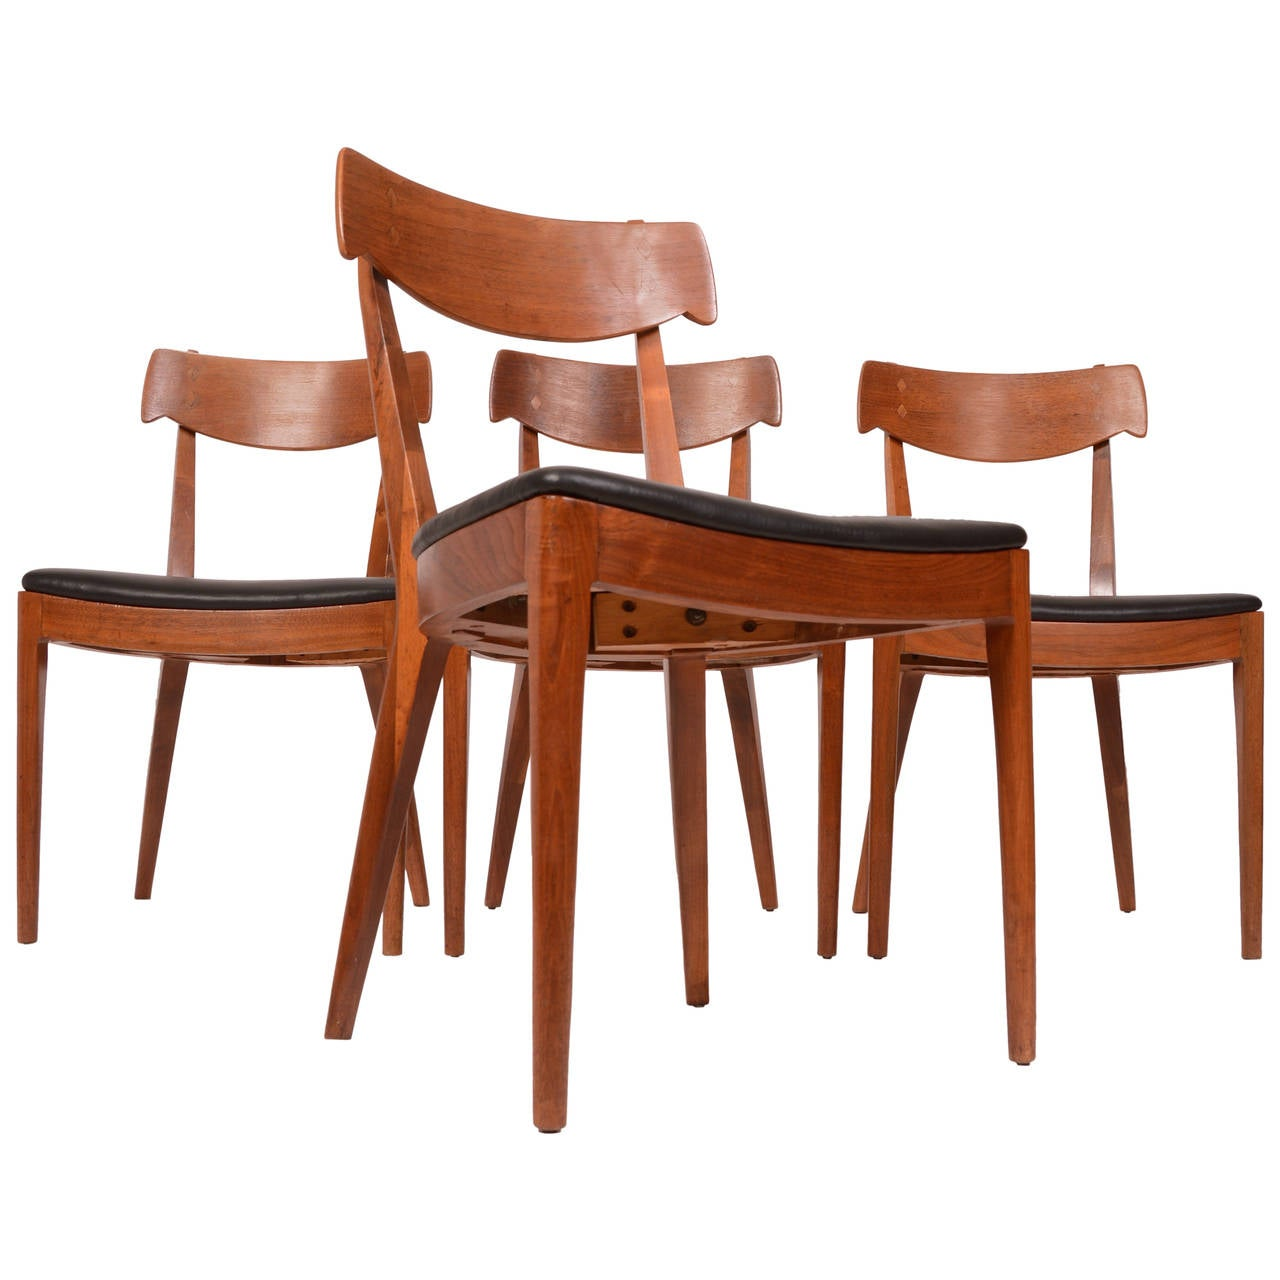 kipp stewart for drexel walnut and rosewood dining chairs at 1stdibs